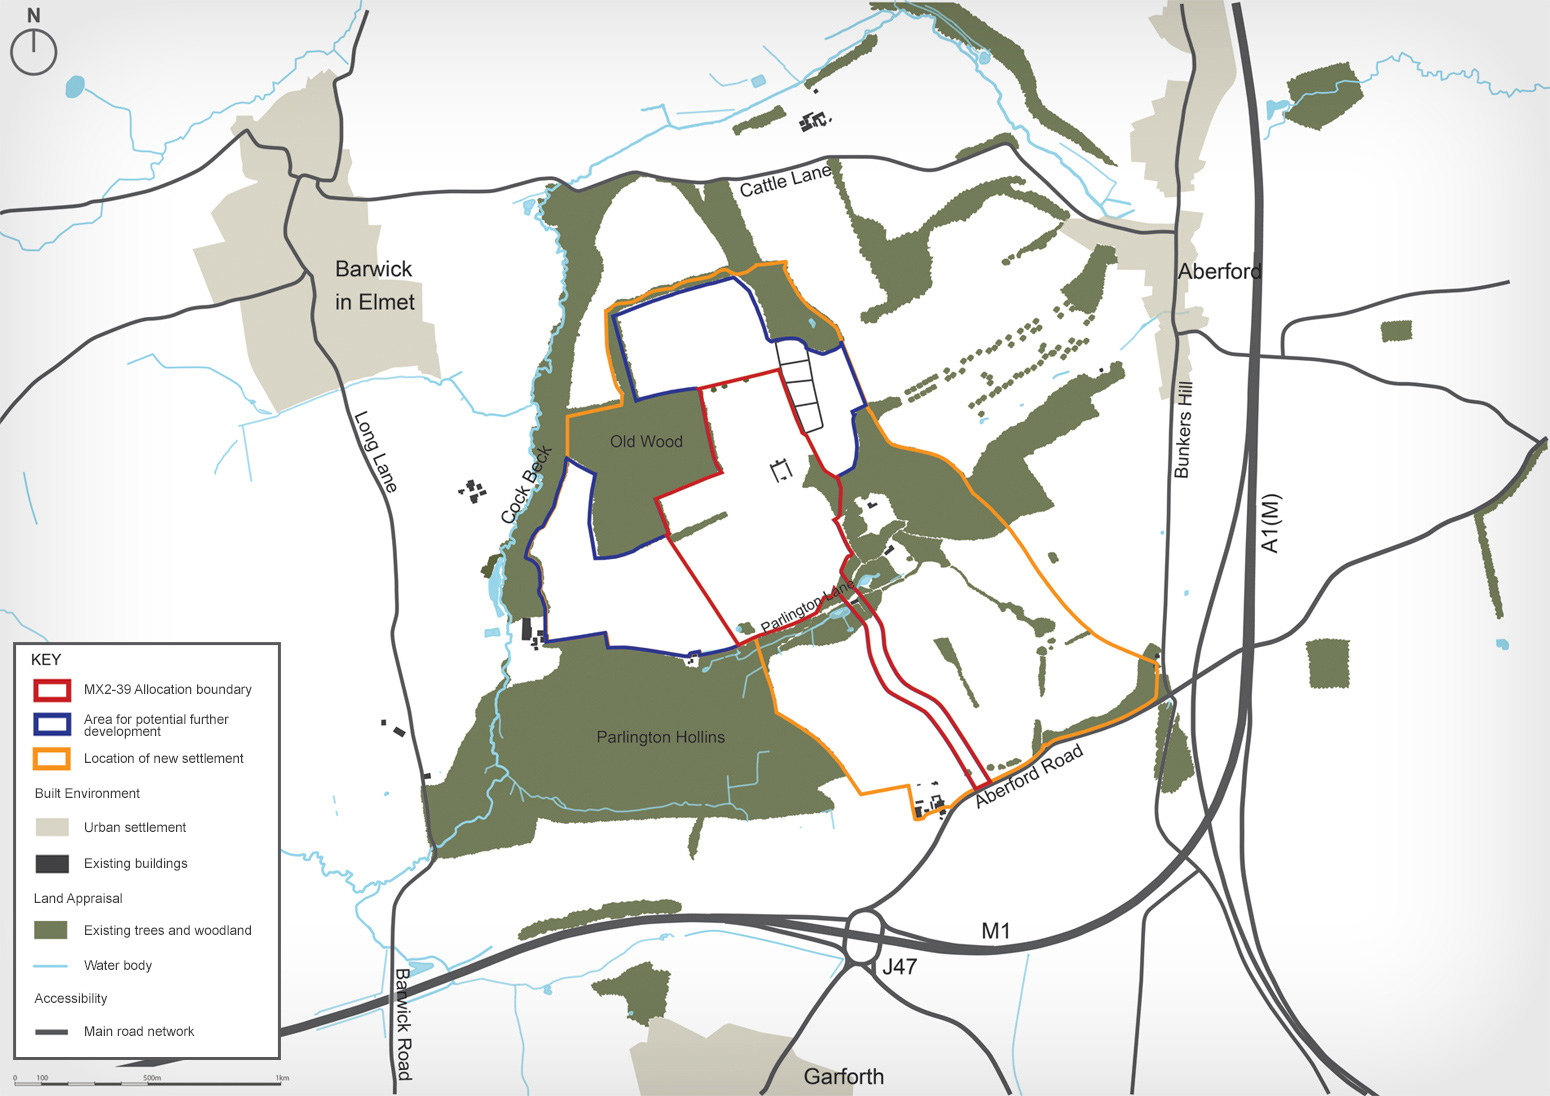 Map of proposed settlement in context of surrounding areas